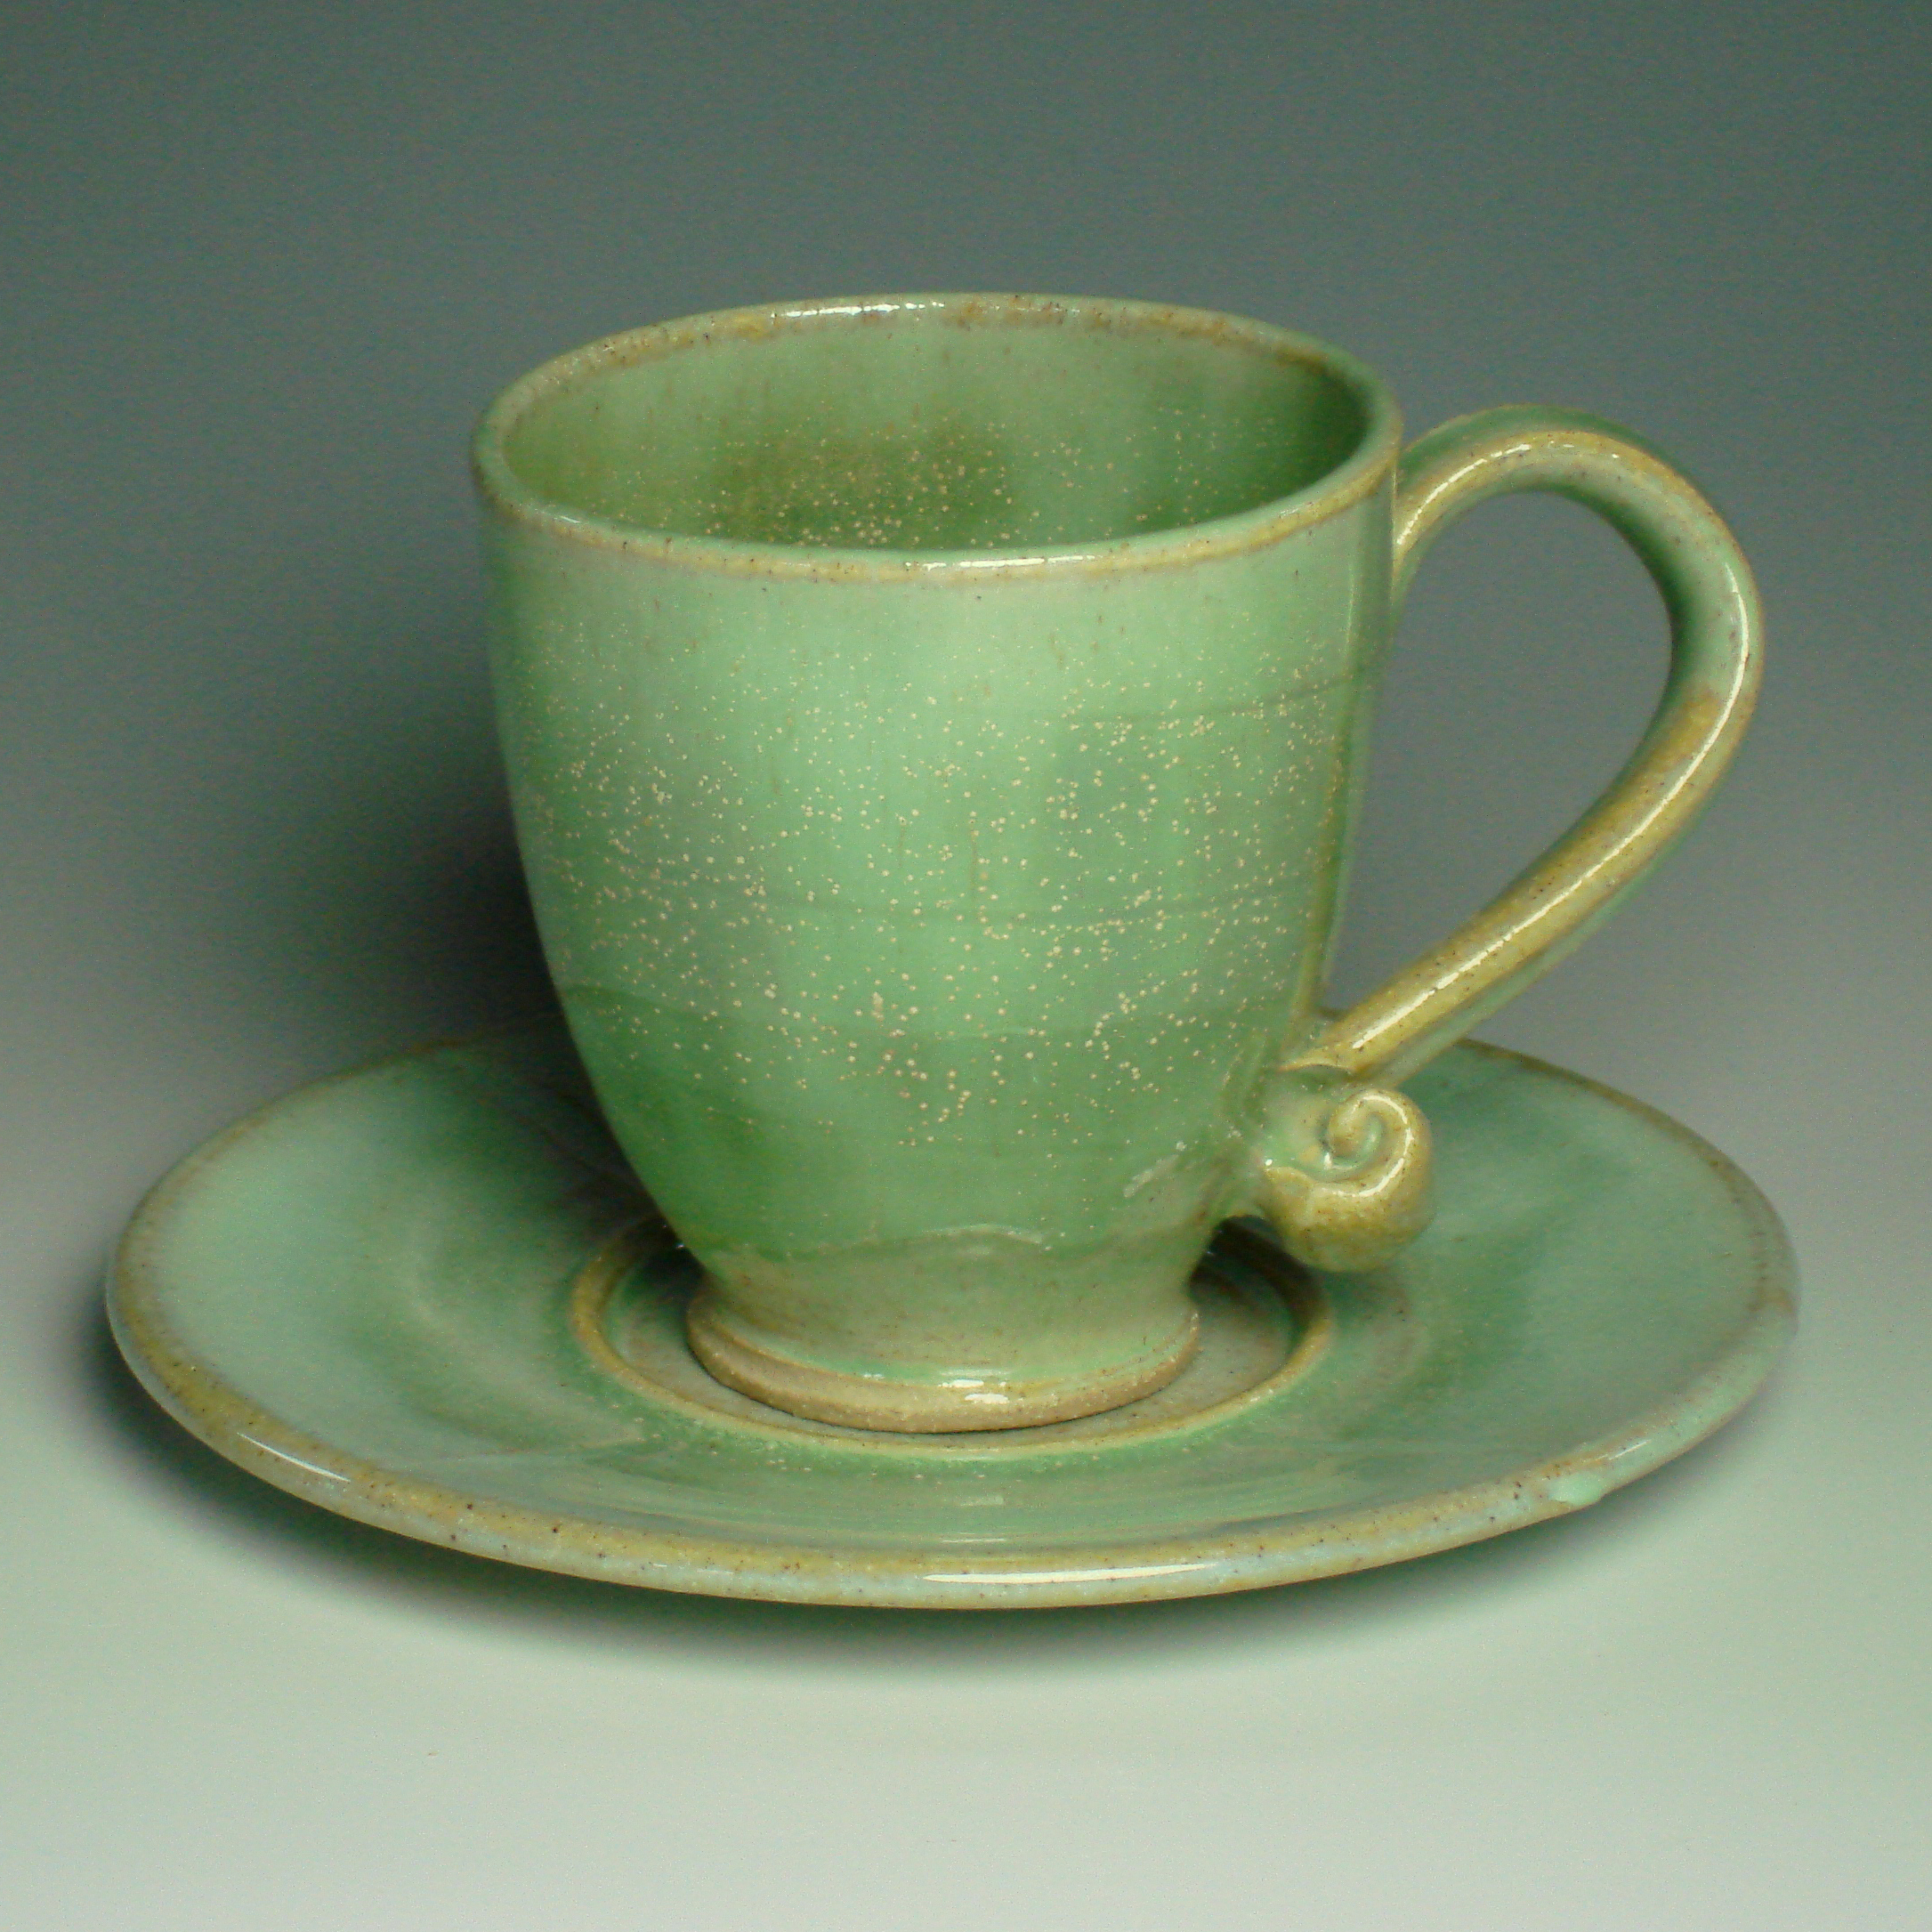 Tea cup and saucer - Spring green